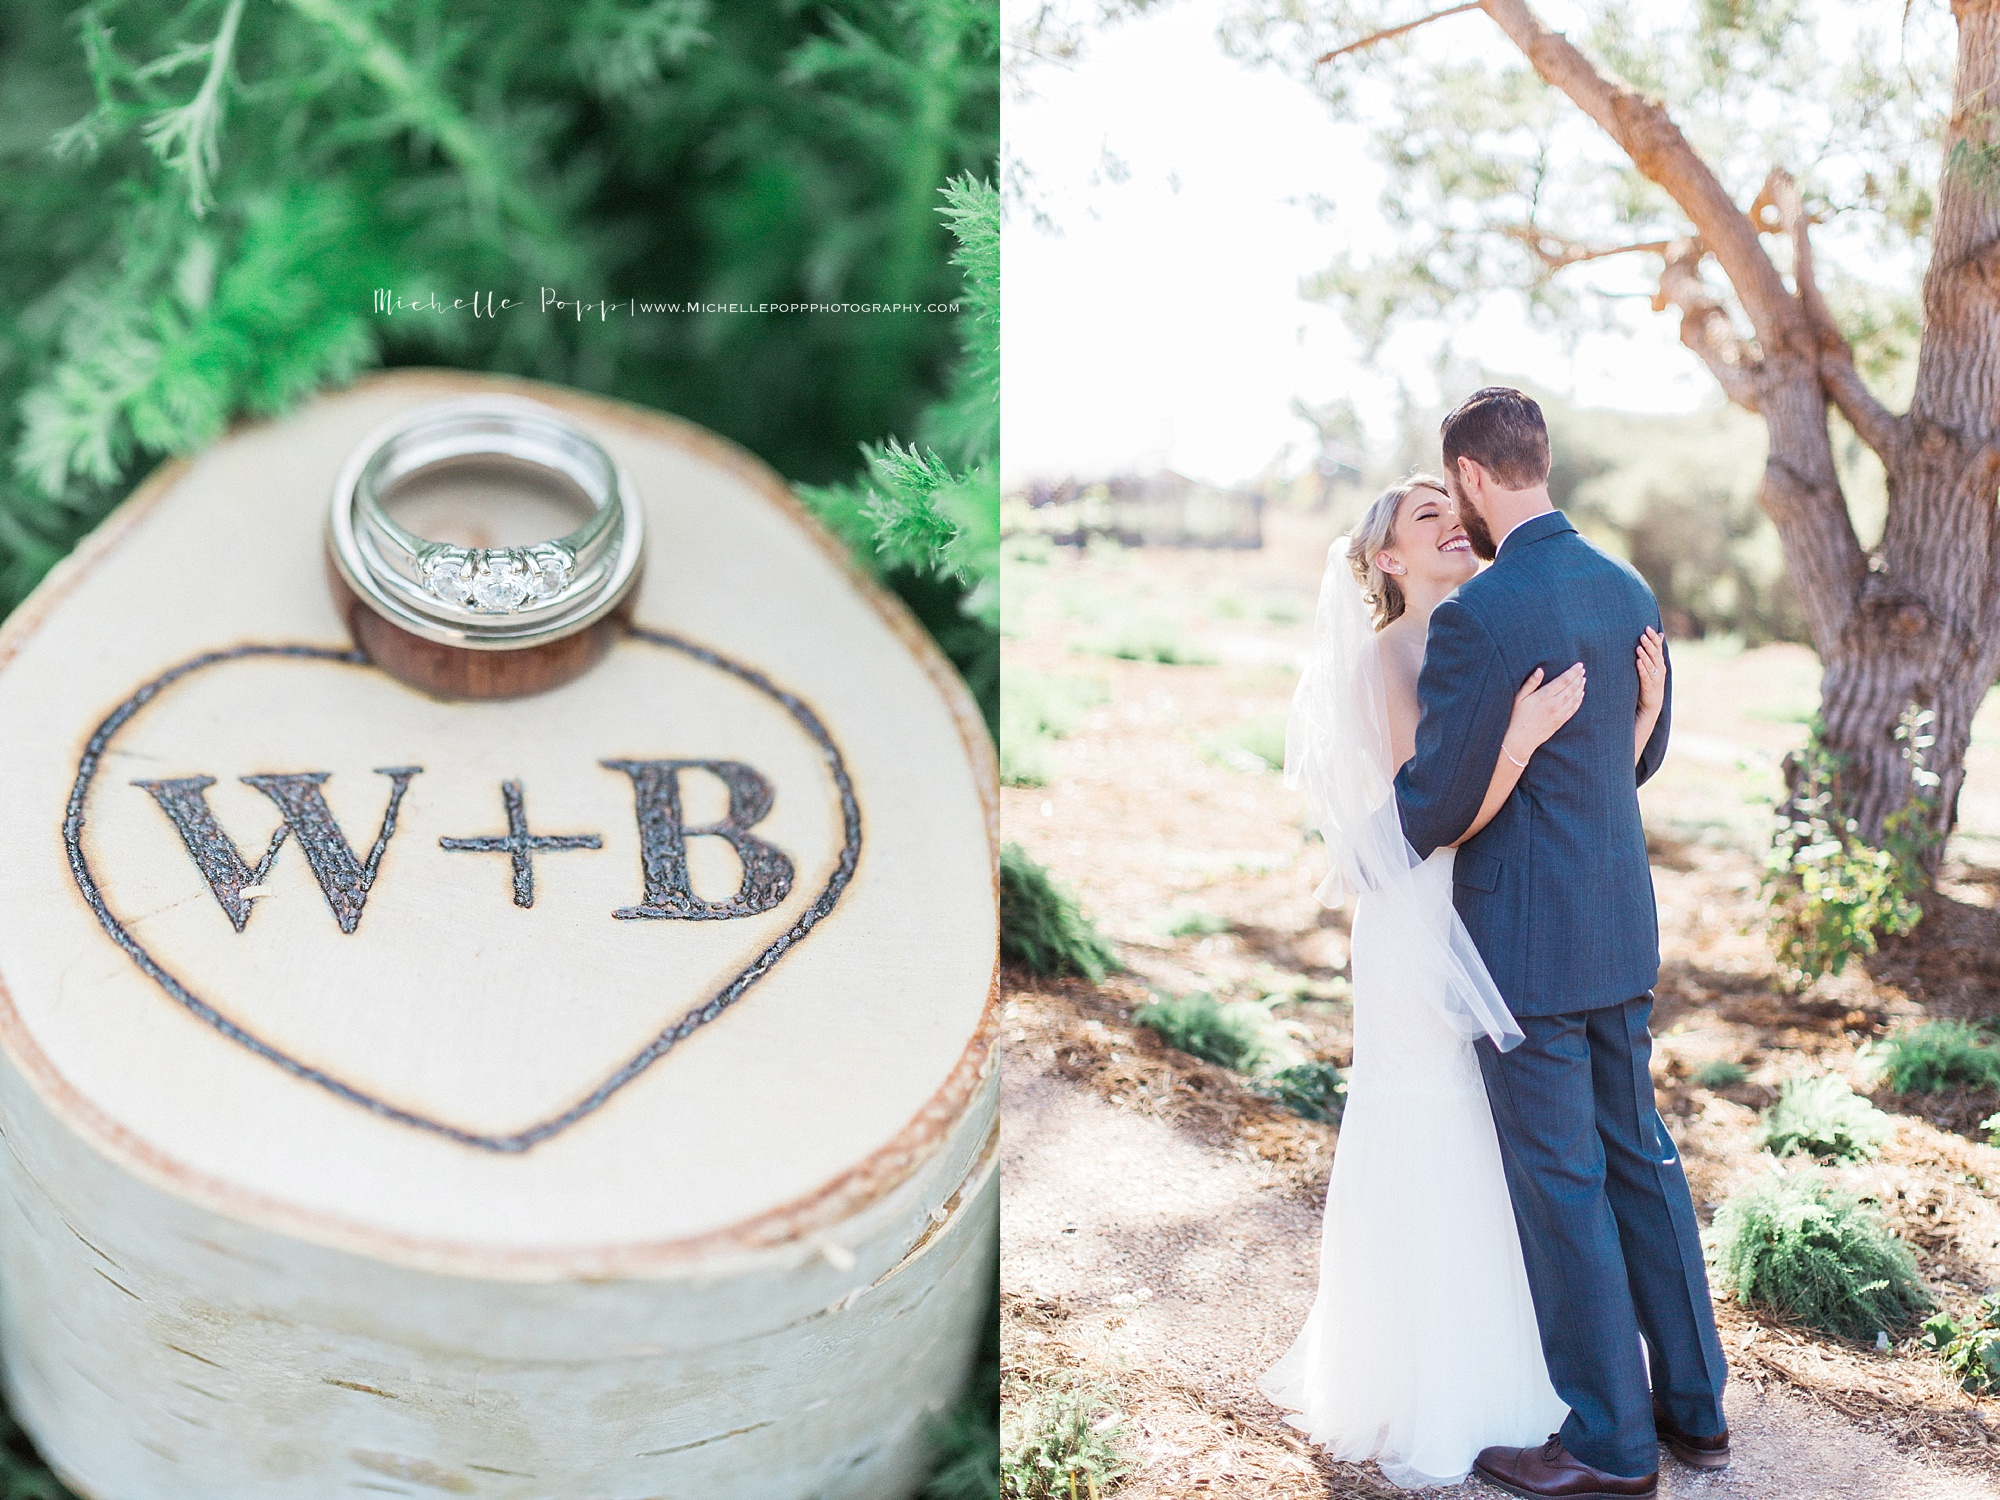 Bride + Groom kissing & close up of rings on engraved box